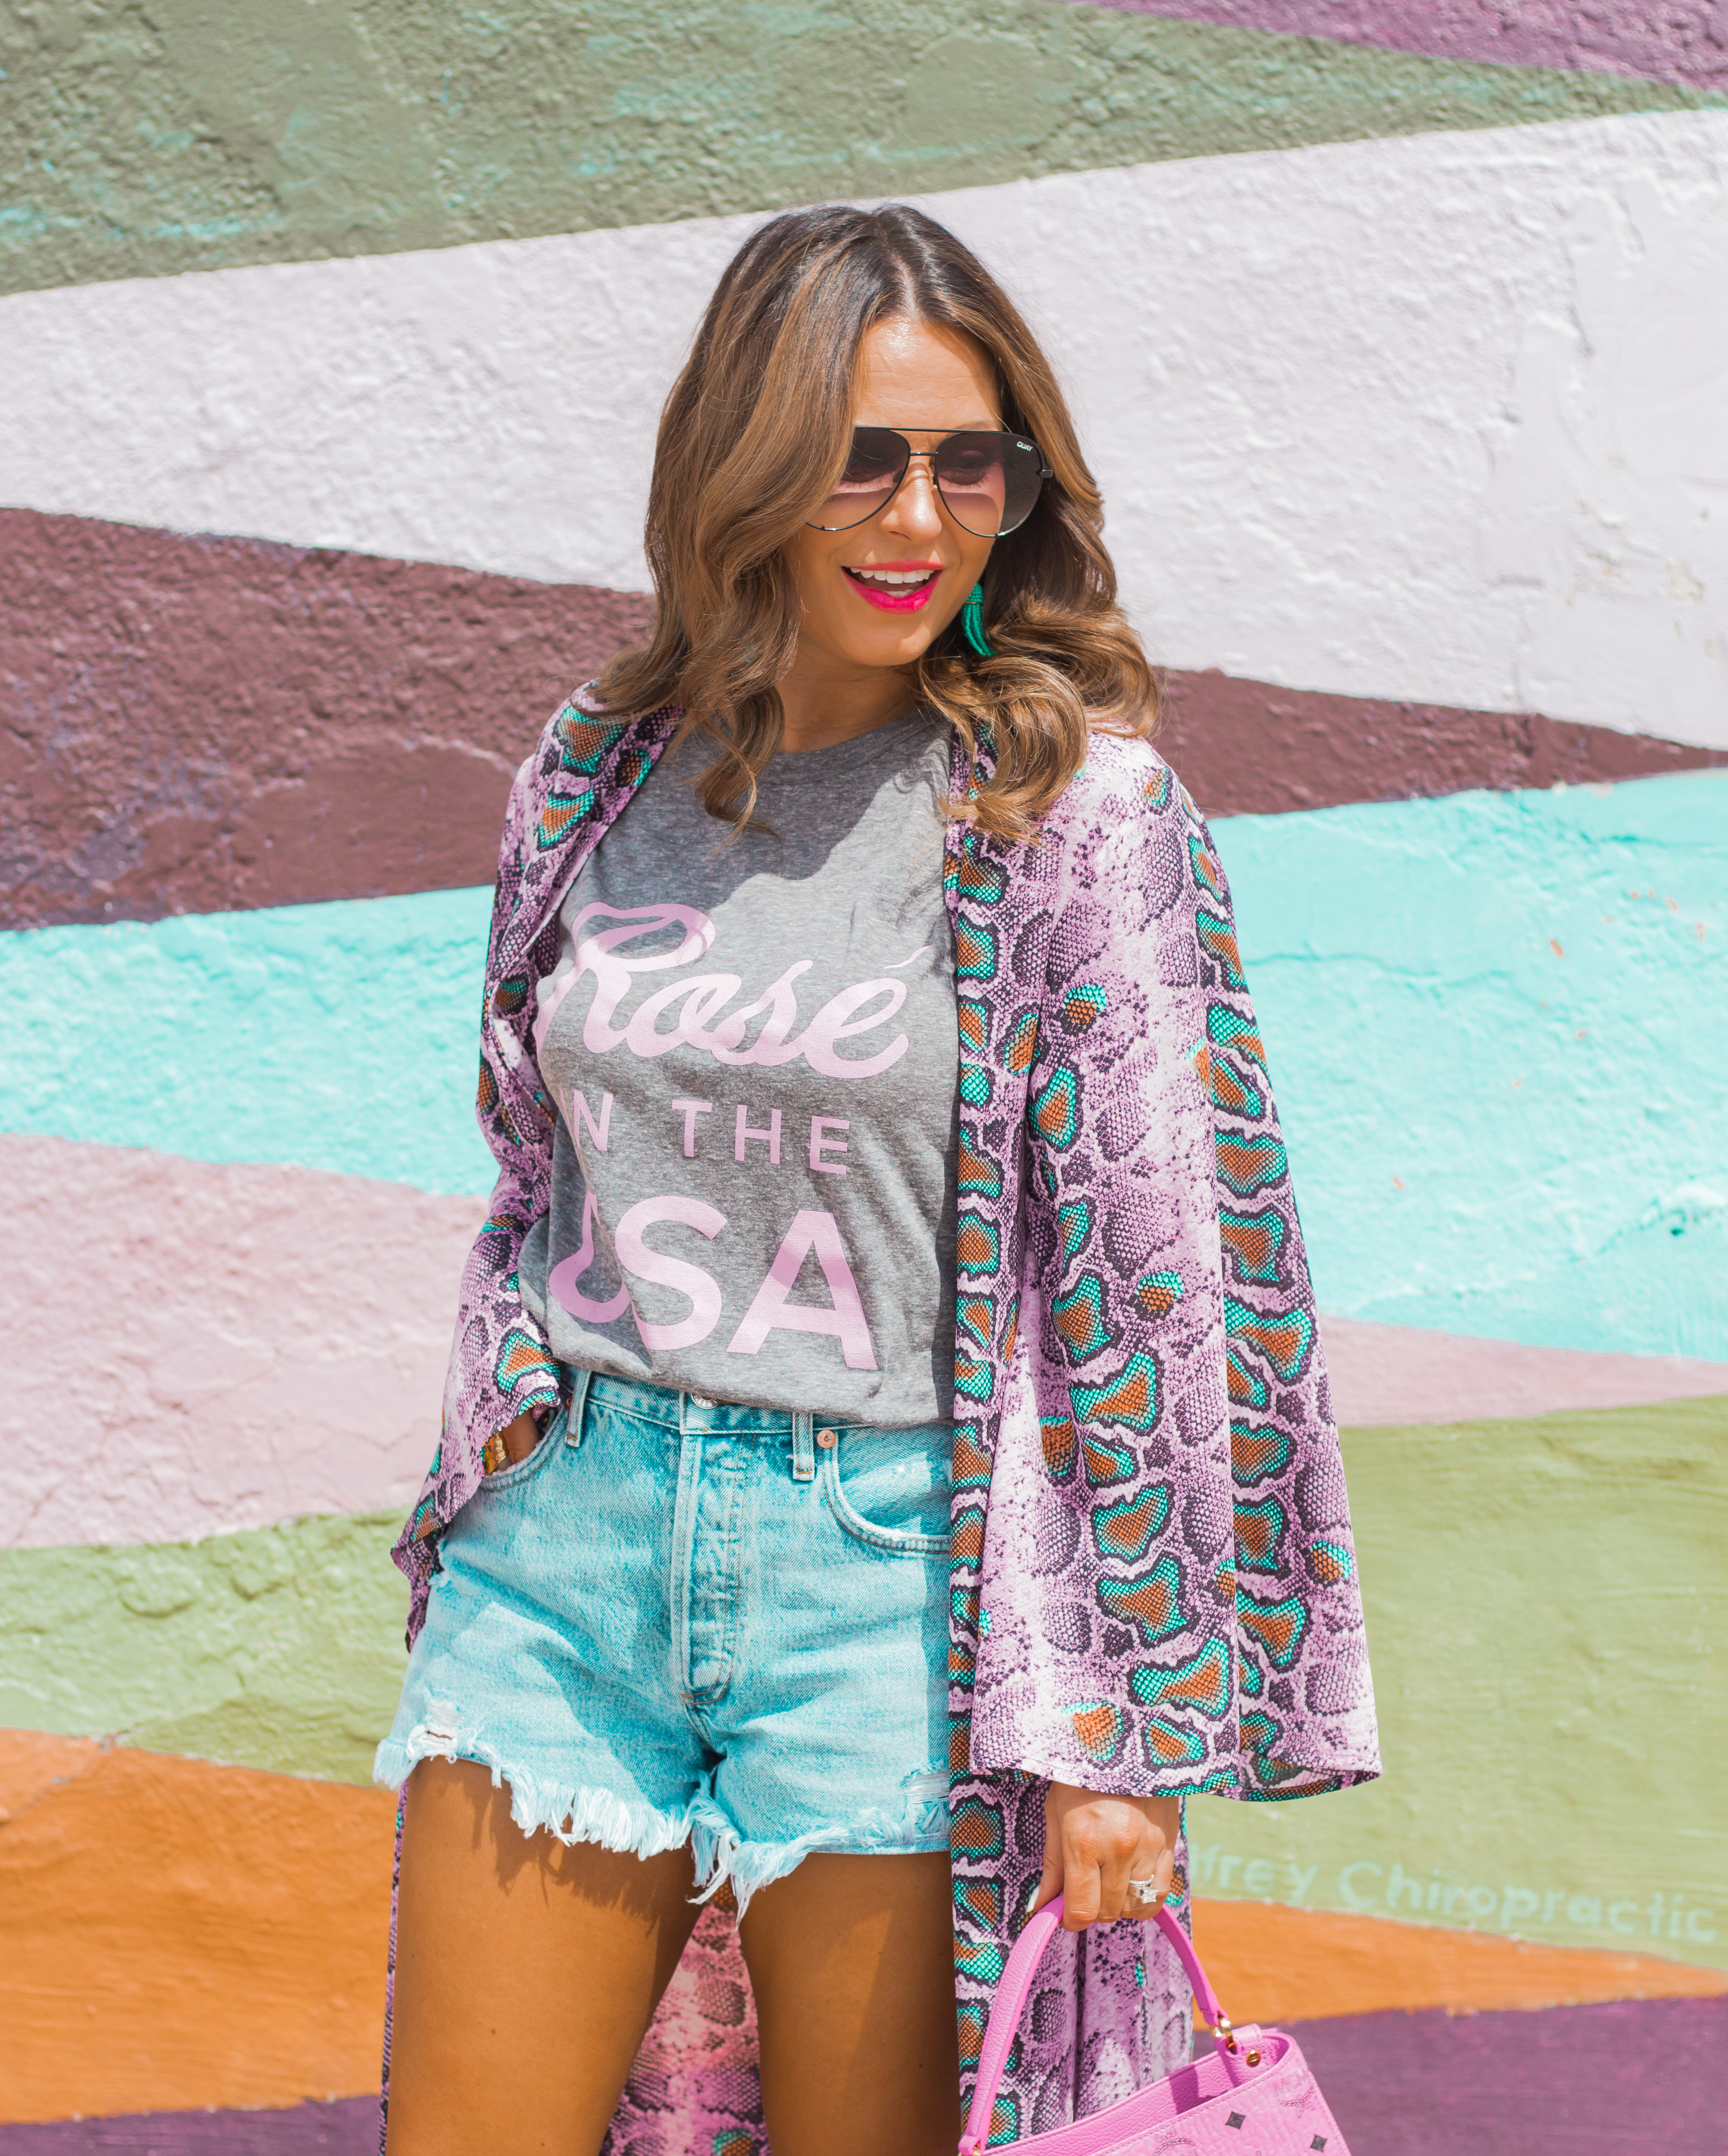 Rosé in the USA-Buddy Love-Kimono-Sugar Boutique-Women's Fashion-Summer Outfit-4th of July-Espadrille Wedges-MCM Bag-Pink Bag-Omaha Blogger-Sabby Style-Agolde Jean Shorts-Turquoise Jewelry-Quay Sunglasses-Colorful Style-Omaha-Nebraska-BaubleBar Earrings-8